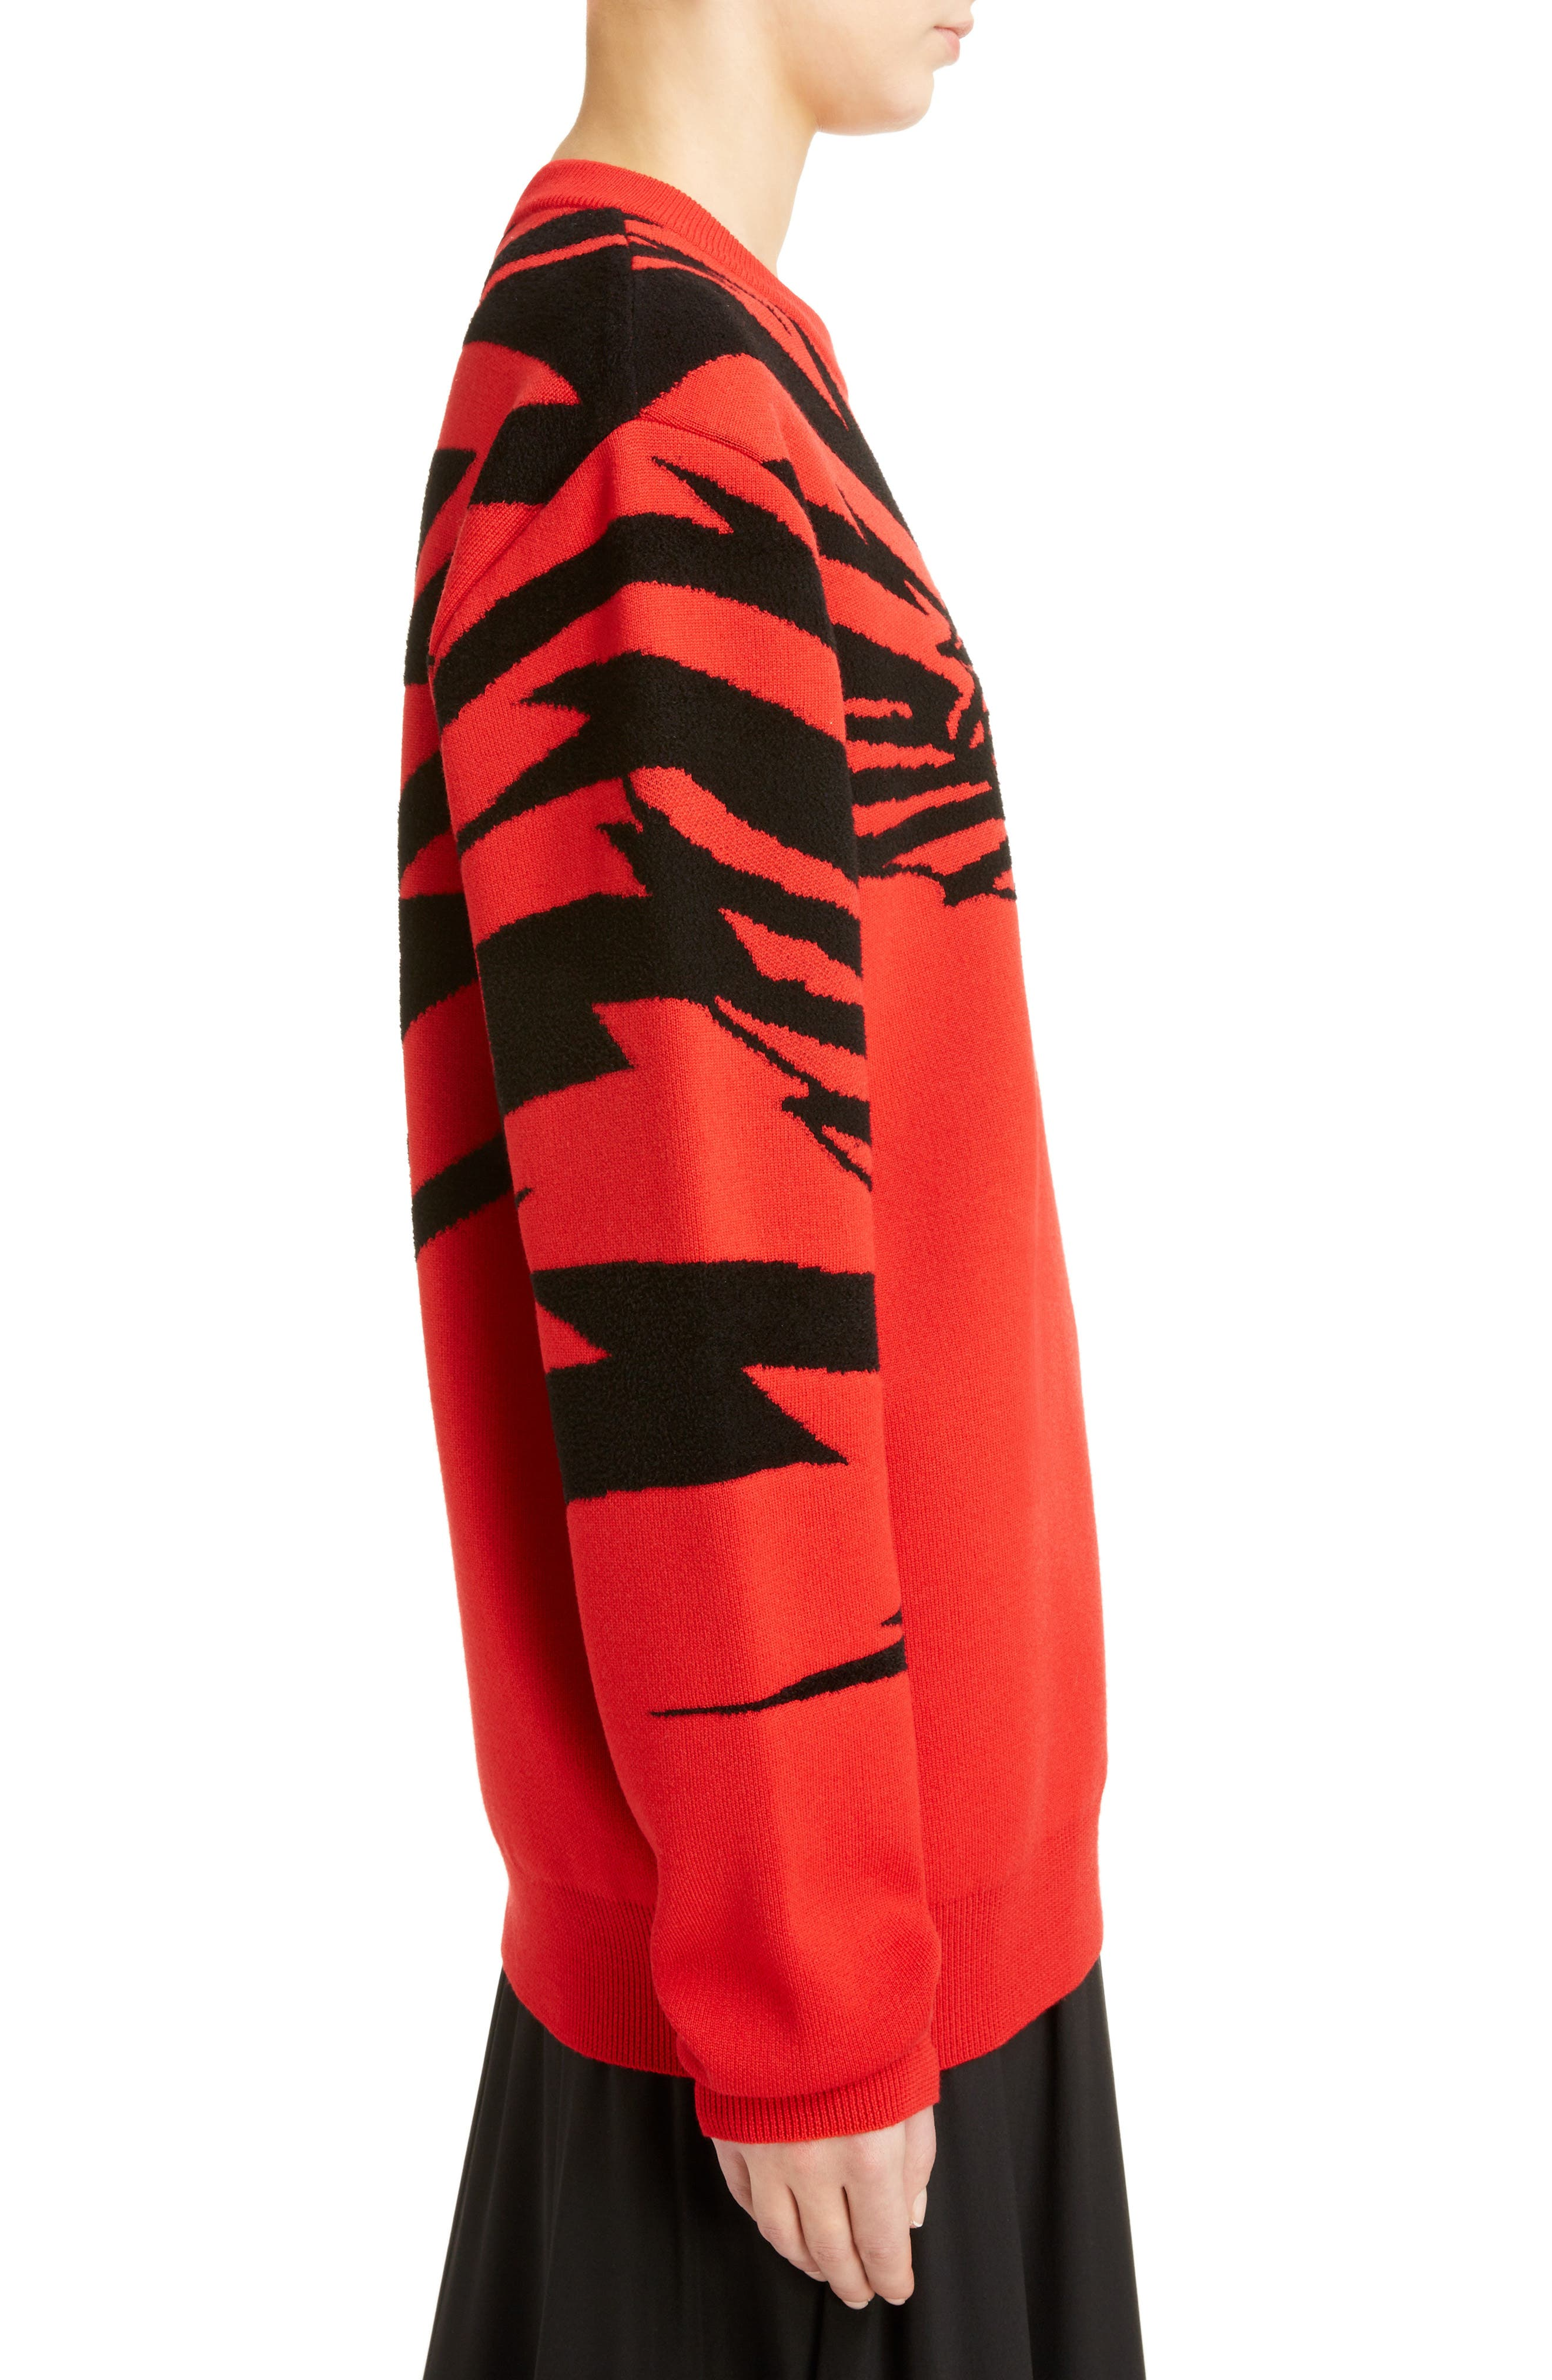 GIVENCHY,                             Tiger Wool Jacquard Sweater,                             Alternate thumbnail 3, color,                             606